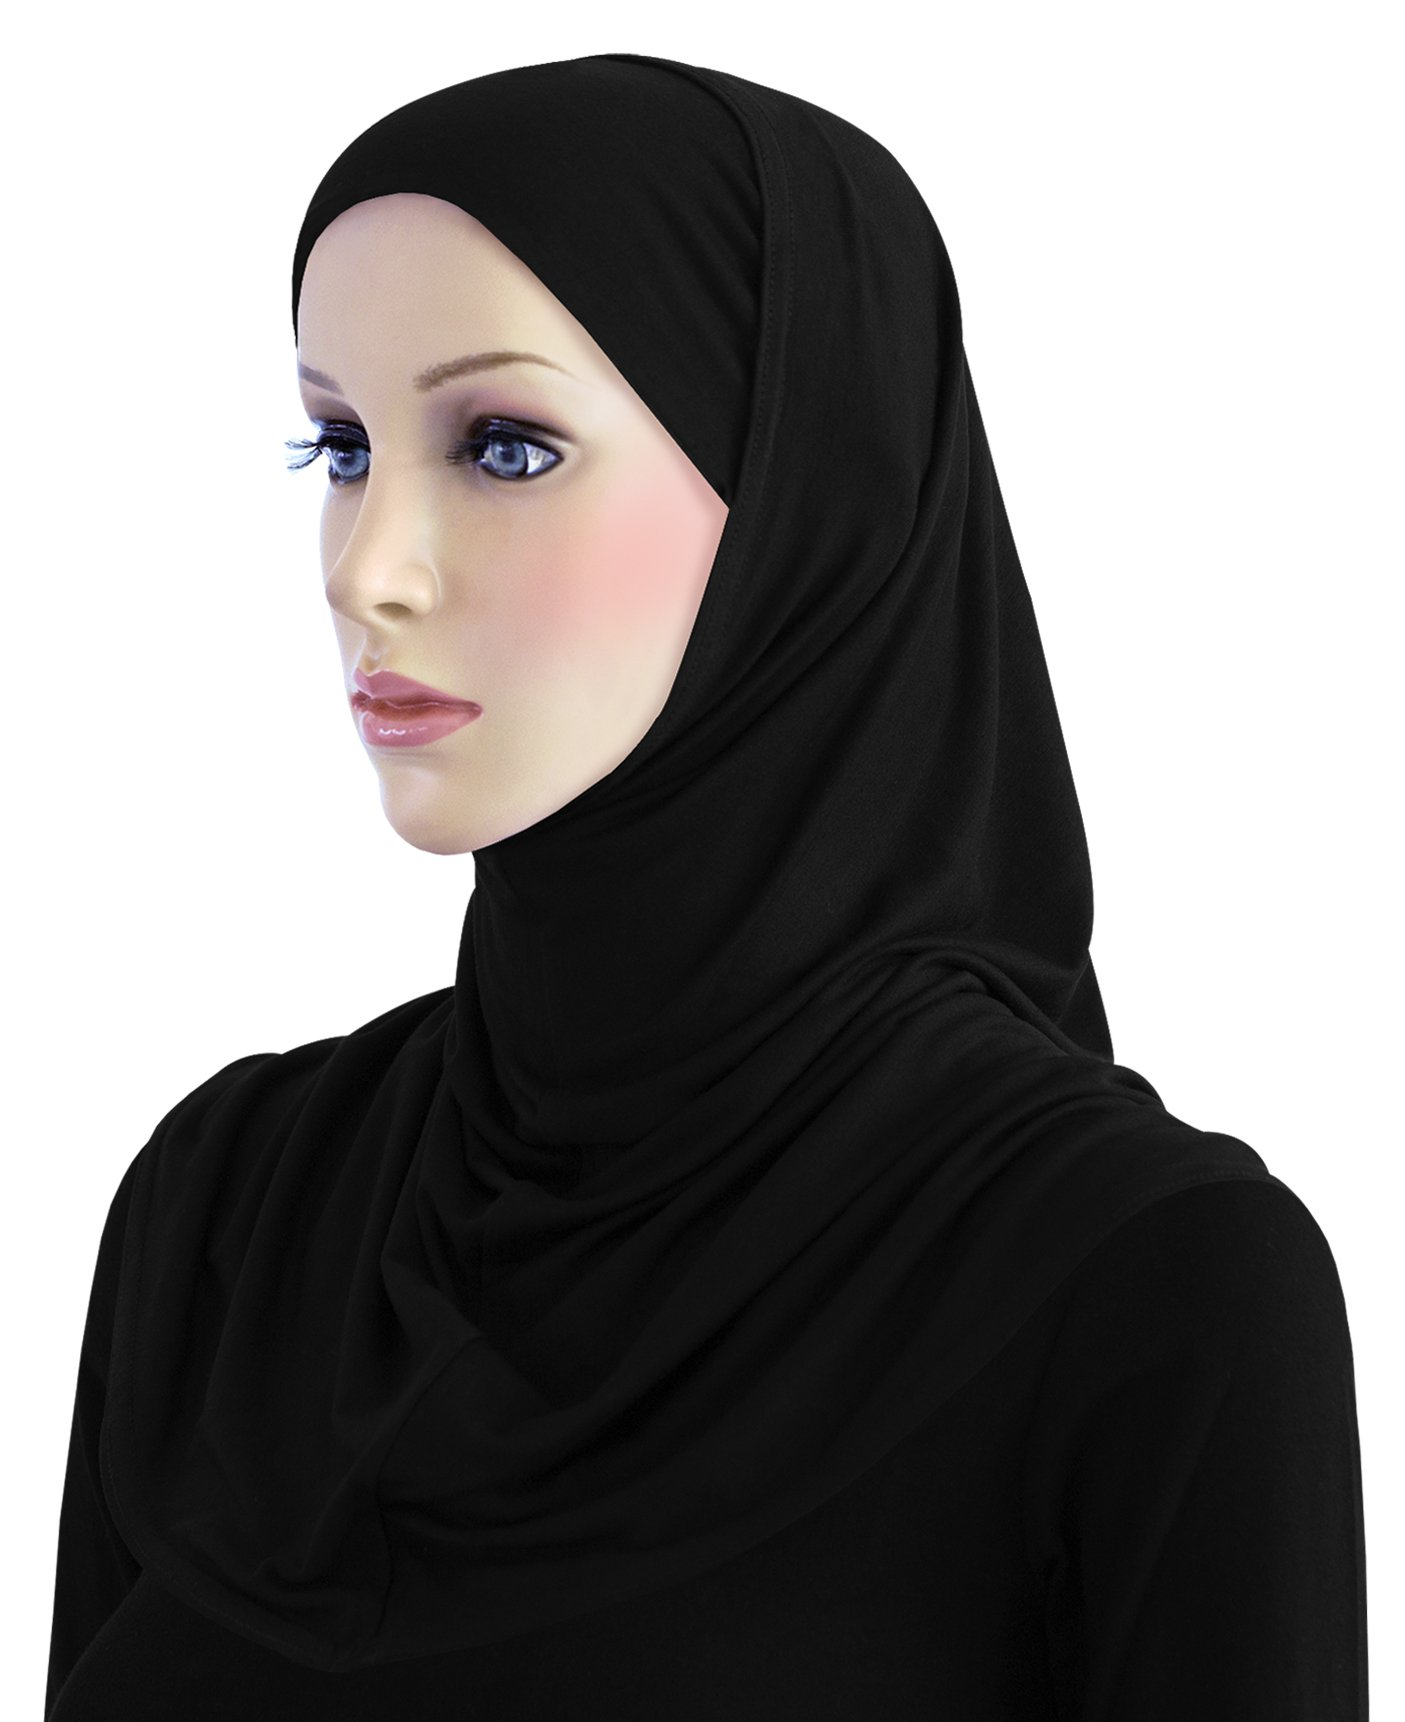 Cotton Hijab 2 piece Amira Set Easy Instant Pull-On Hood & Tube Cap (Black)